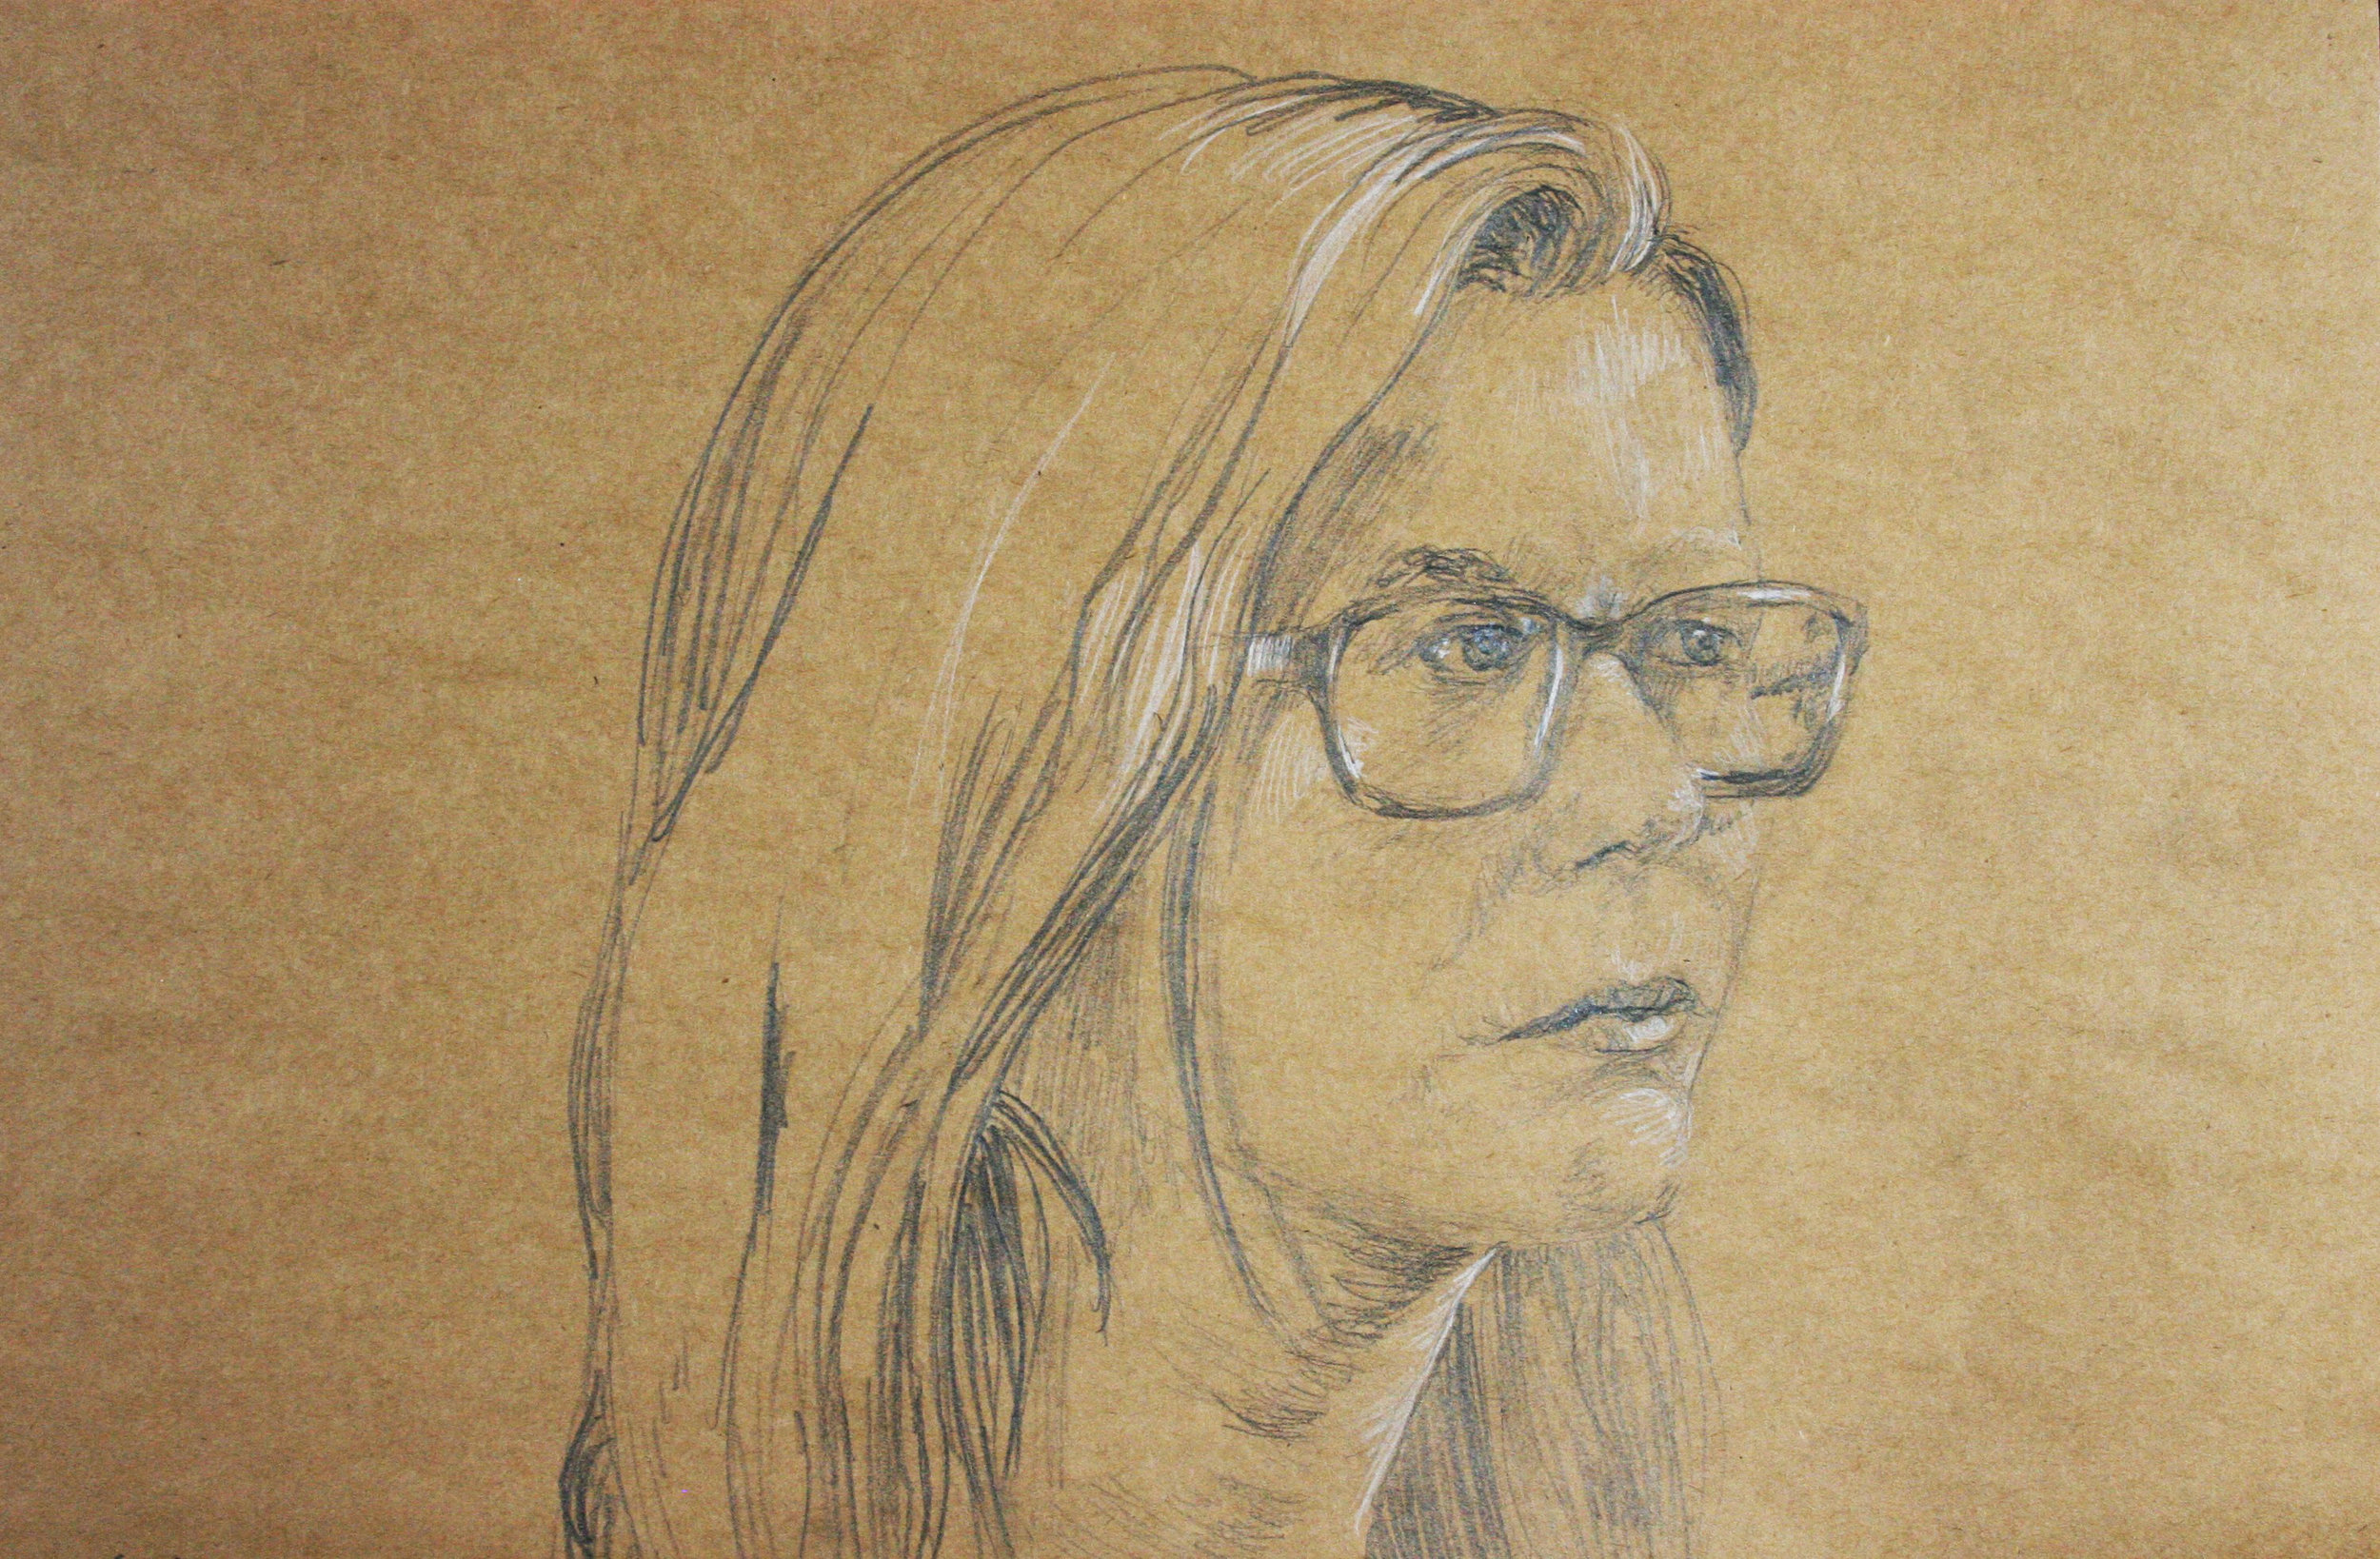 KIm Kristensen did this 2-hour drawing of his daughter.